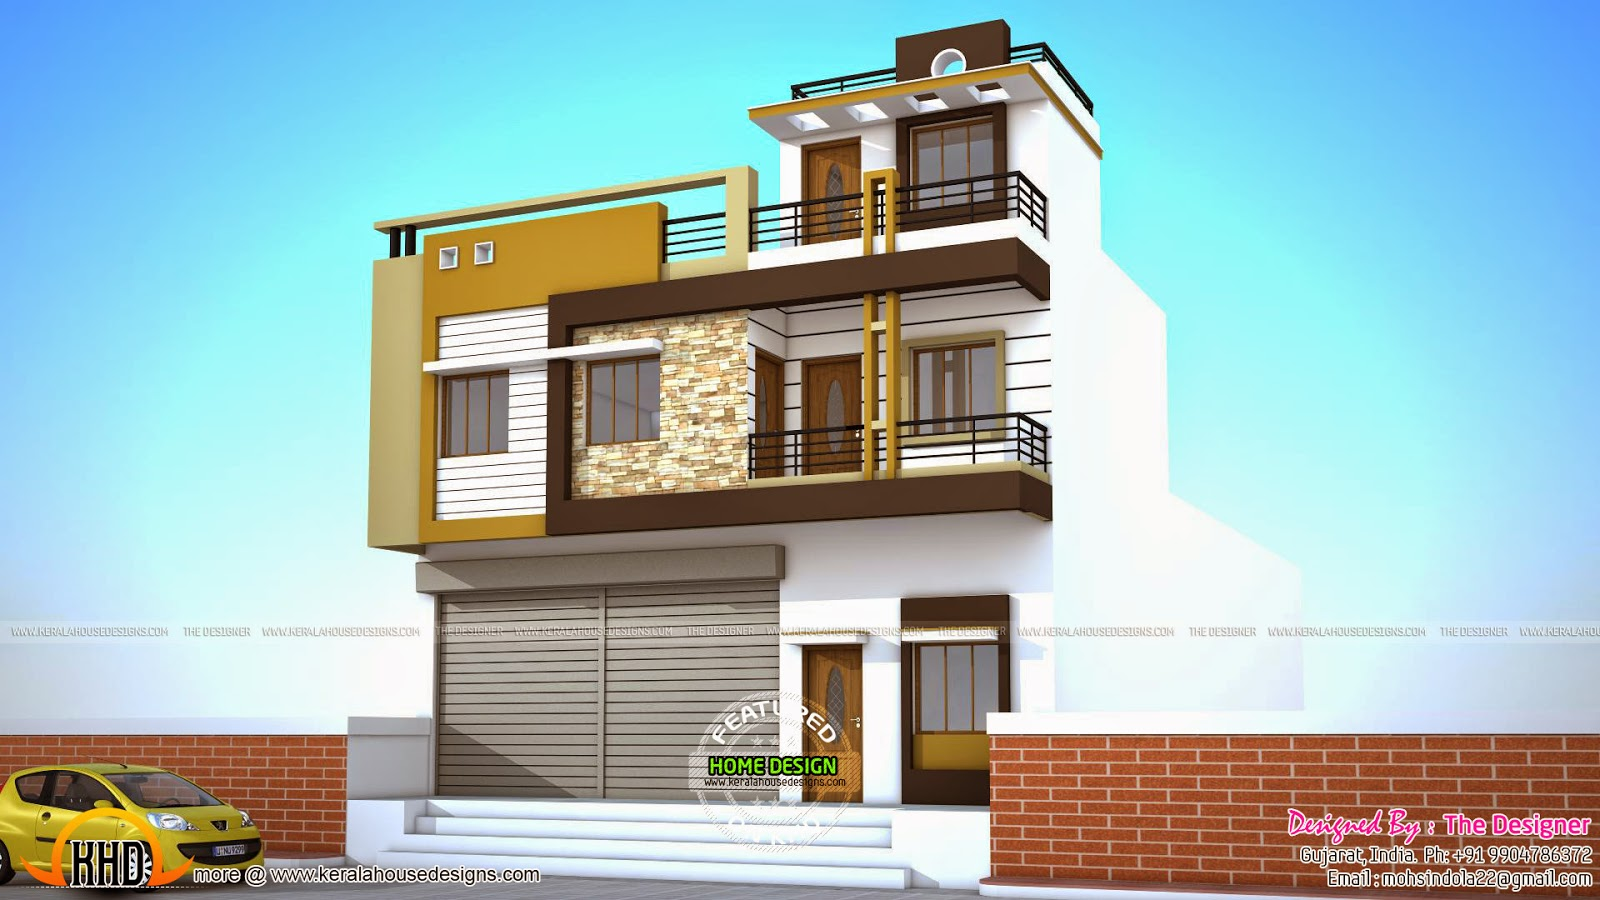 2 house plans with shops on ground floor kerala home for Pictures of house designs and floor plans